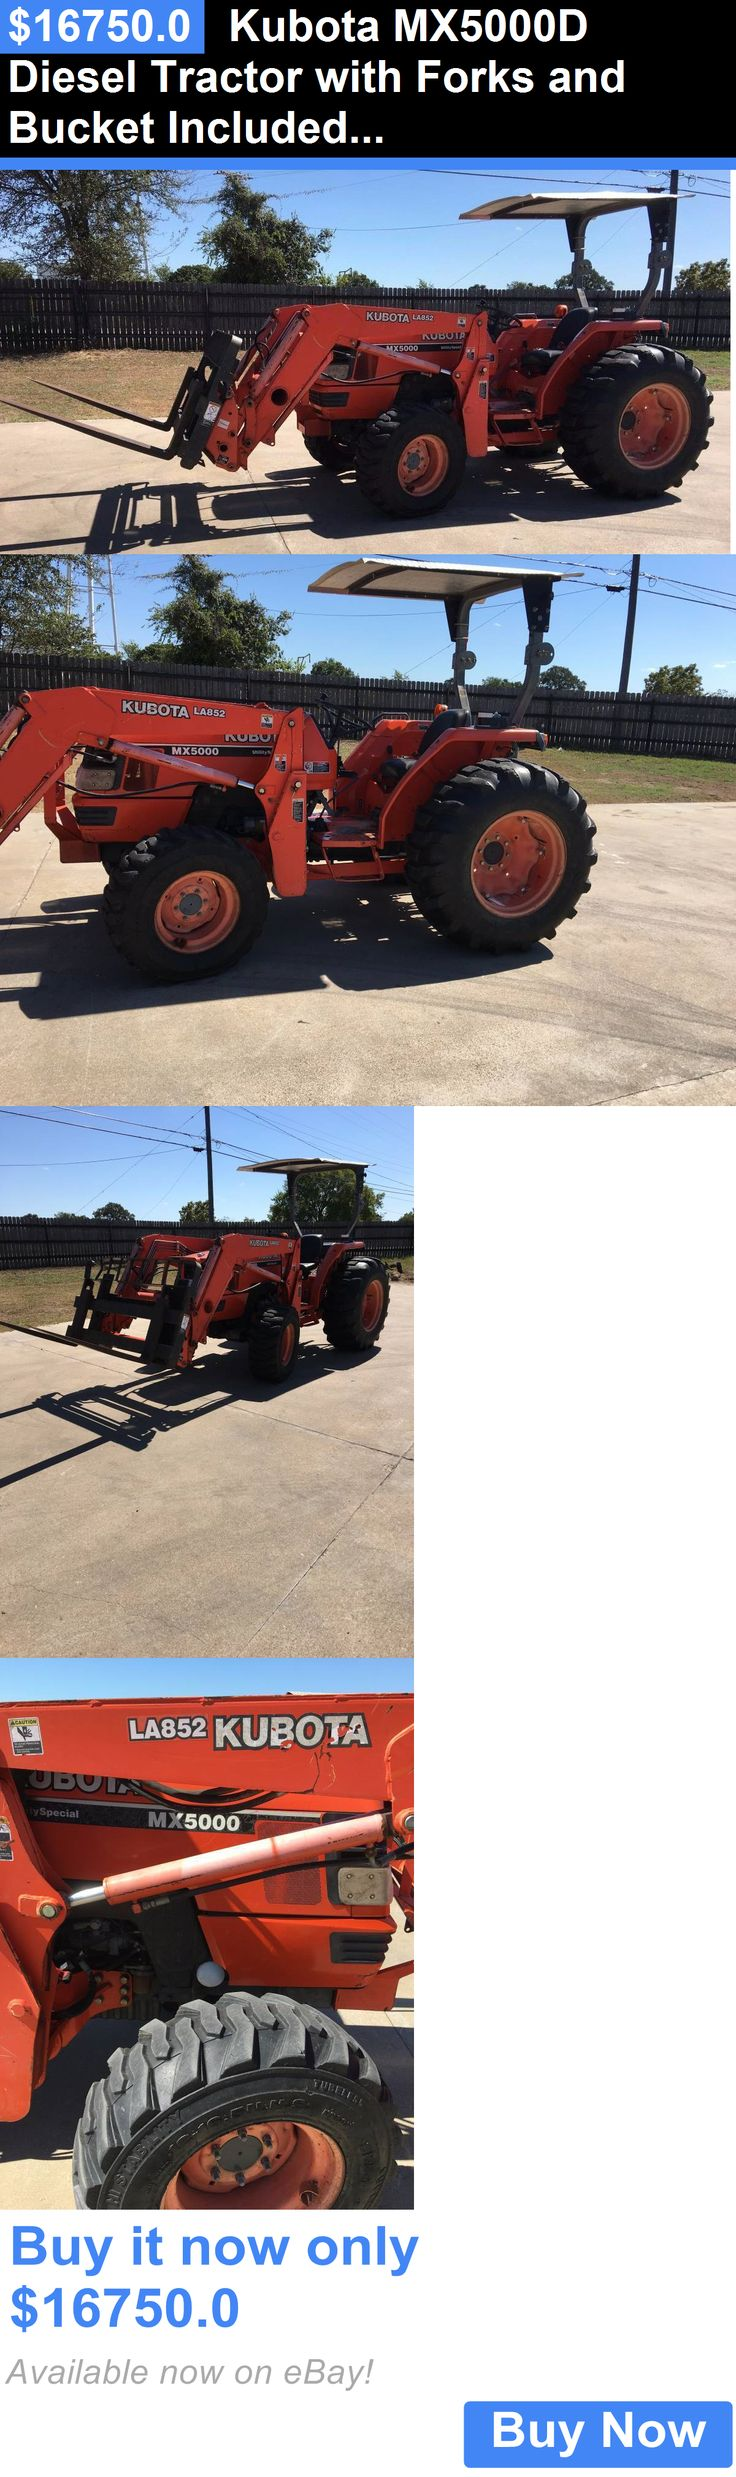 heavy equipment: Kubota Mx5000d Diesel Tractor With Forks And Bucket Included Used 958 Hours BUY IT NOW ONLY: $16750.0